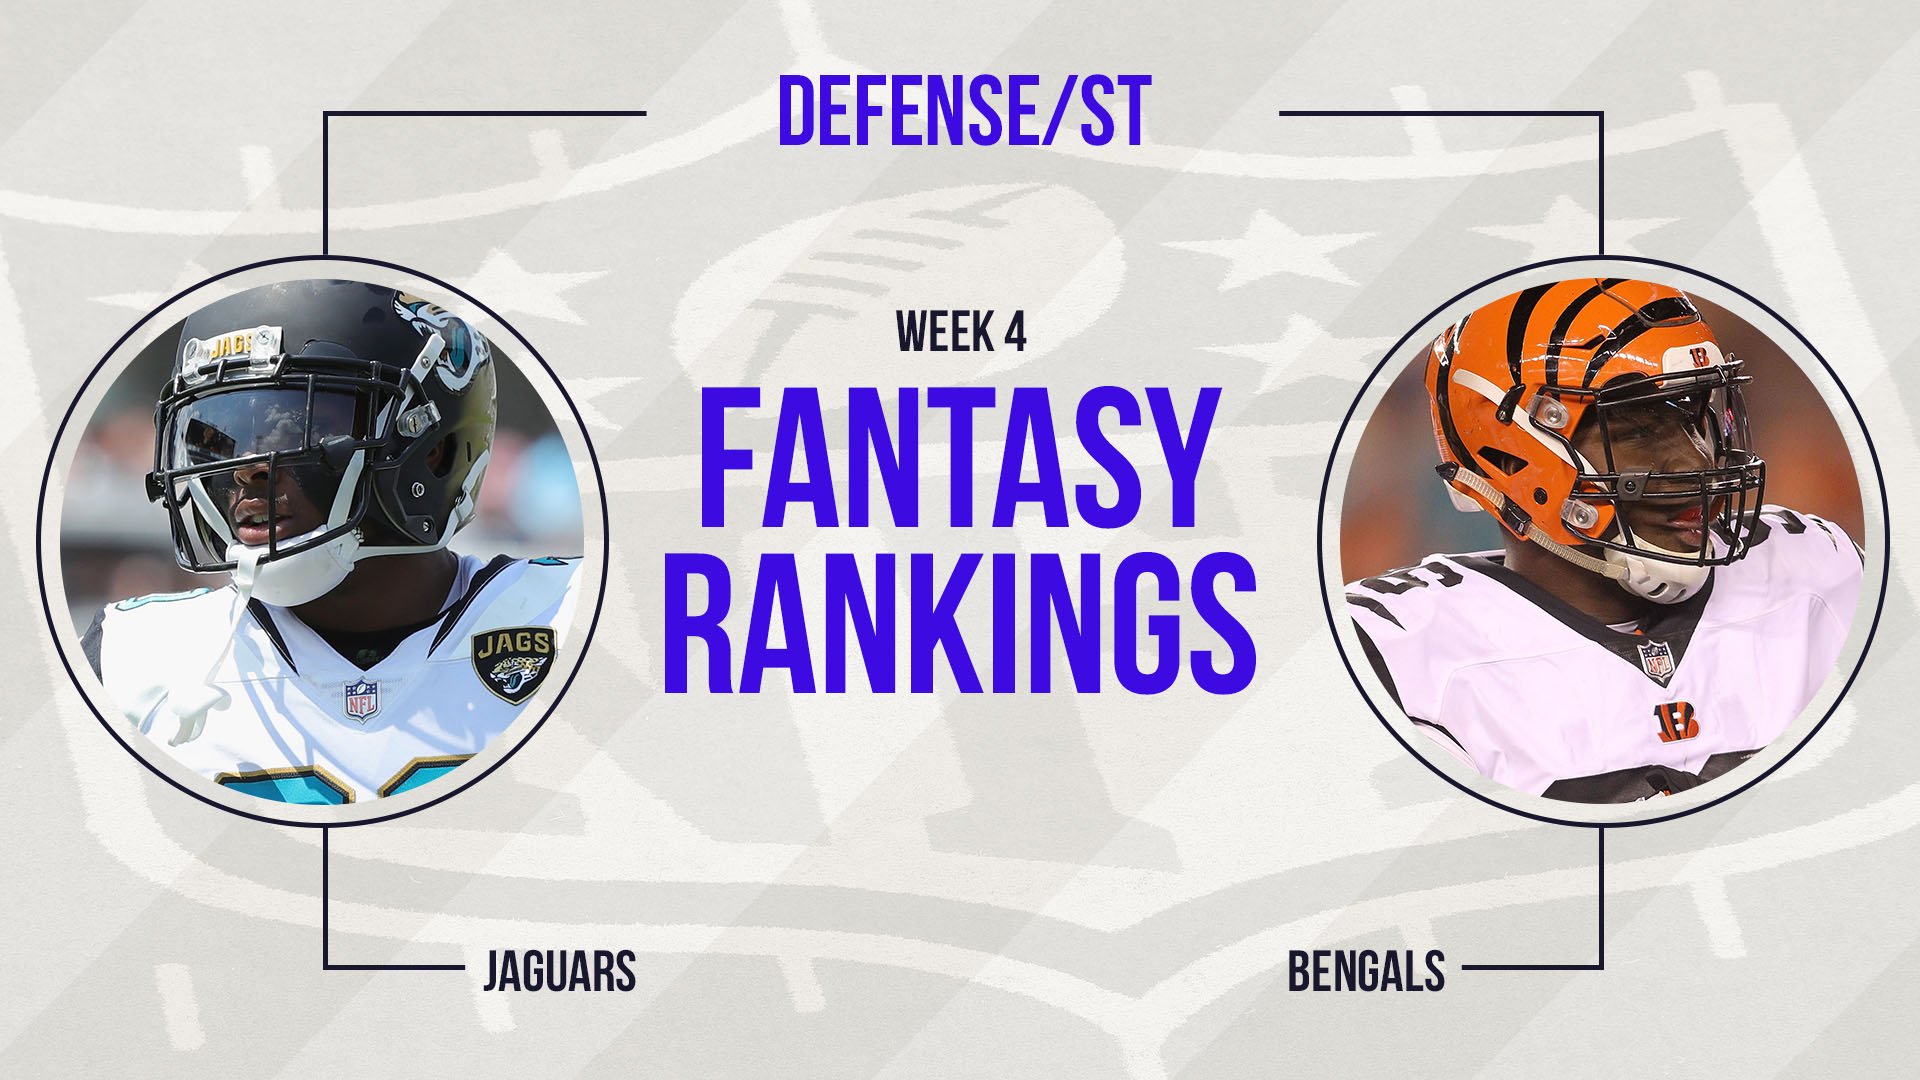 most accurate fantasy football projections 4for4 is home of the most accurate fantasy football rankings since 2012 if you want to win your league this year, you need verified-accurate rankings, decision support tools, and actionable content.